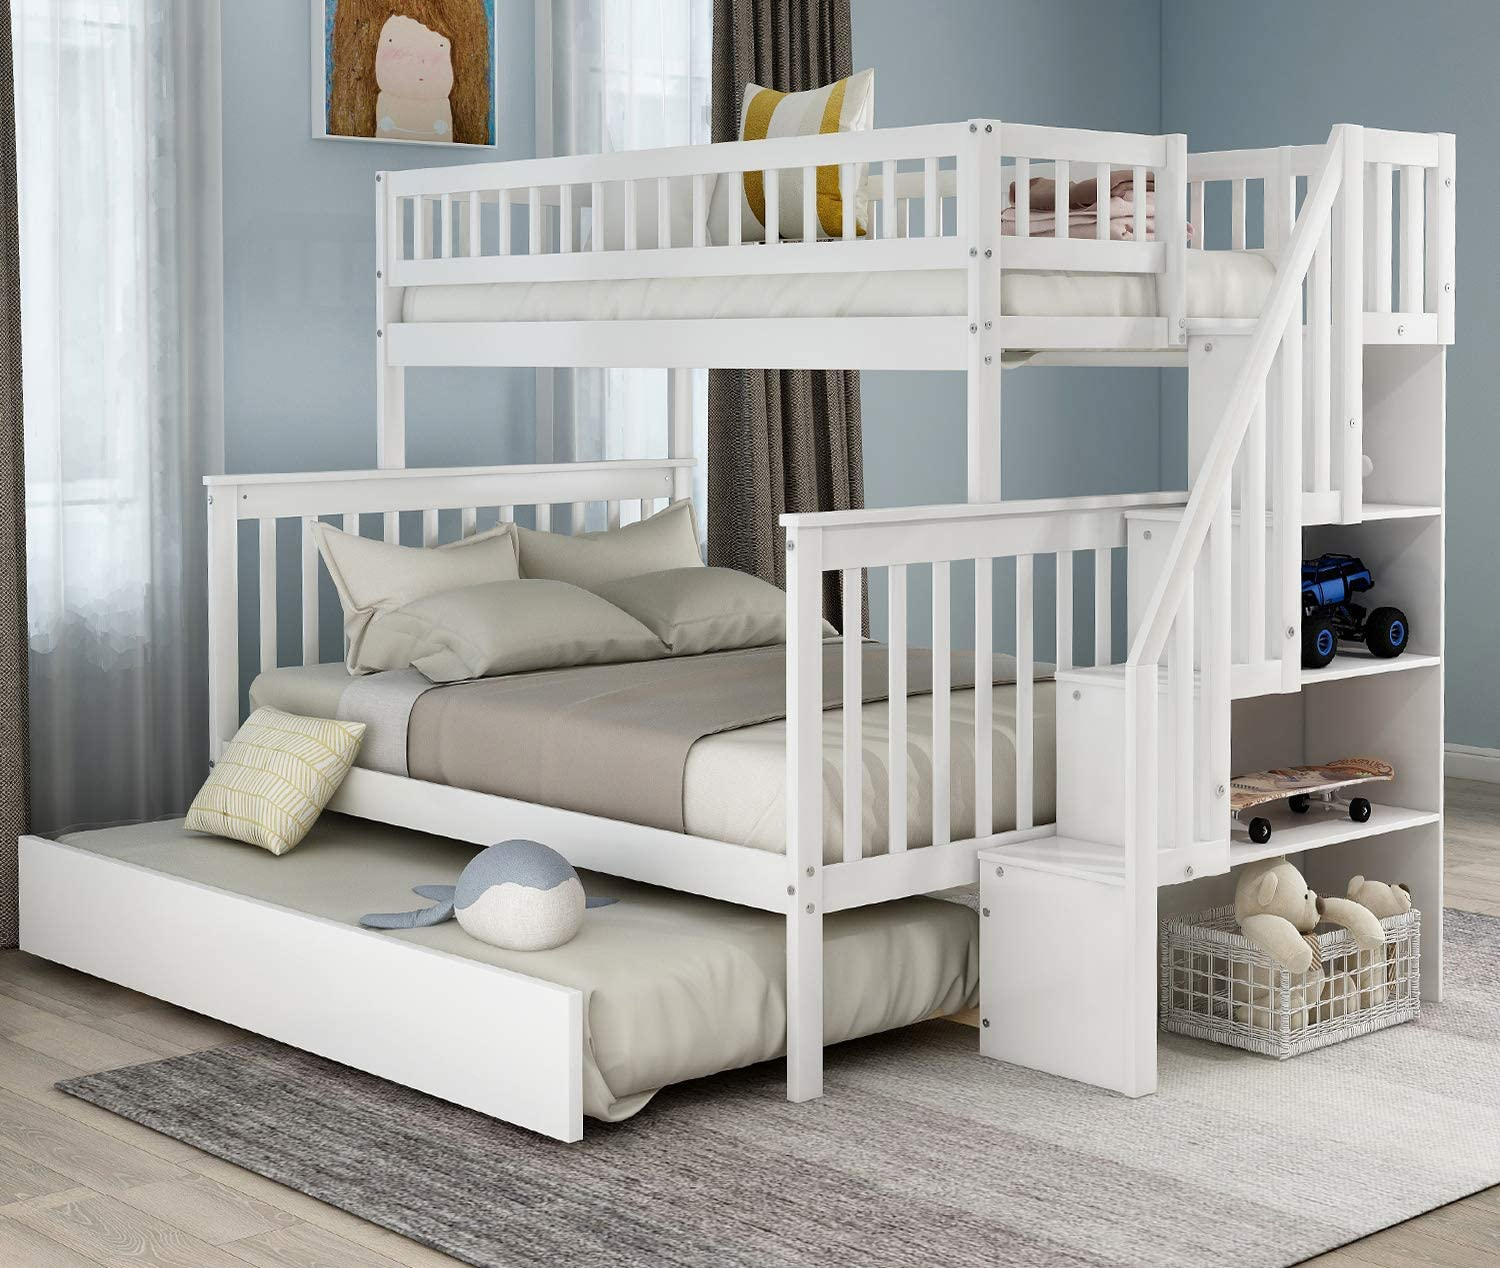 STARTOGOO Solid Wood Twin Over Full Trundle, Bunk Beds for Kids with Storage, Stairs and Guard Rail, No Spring Box Needed (White)